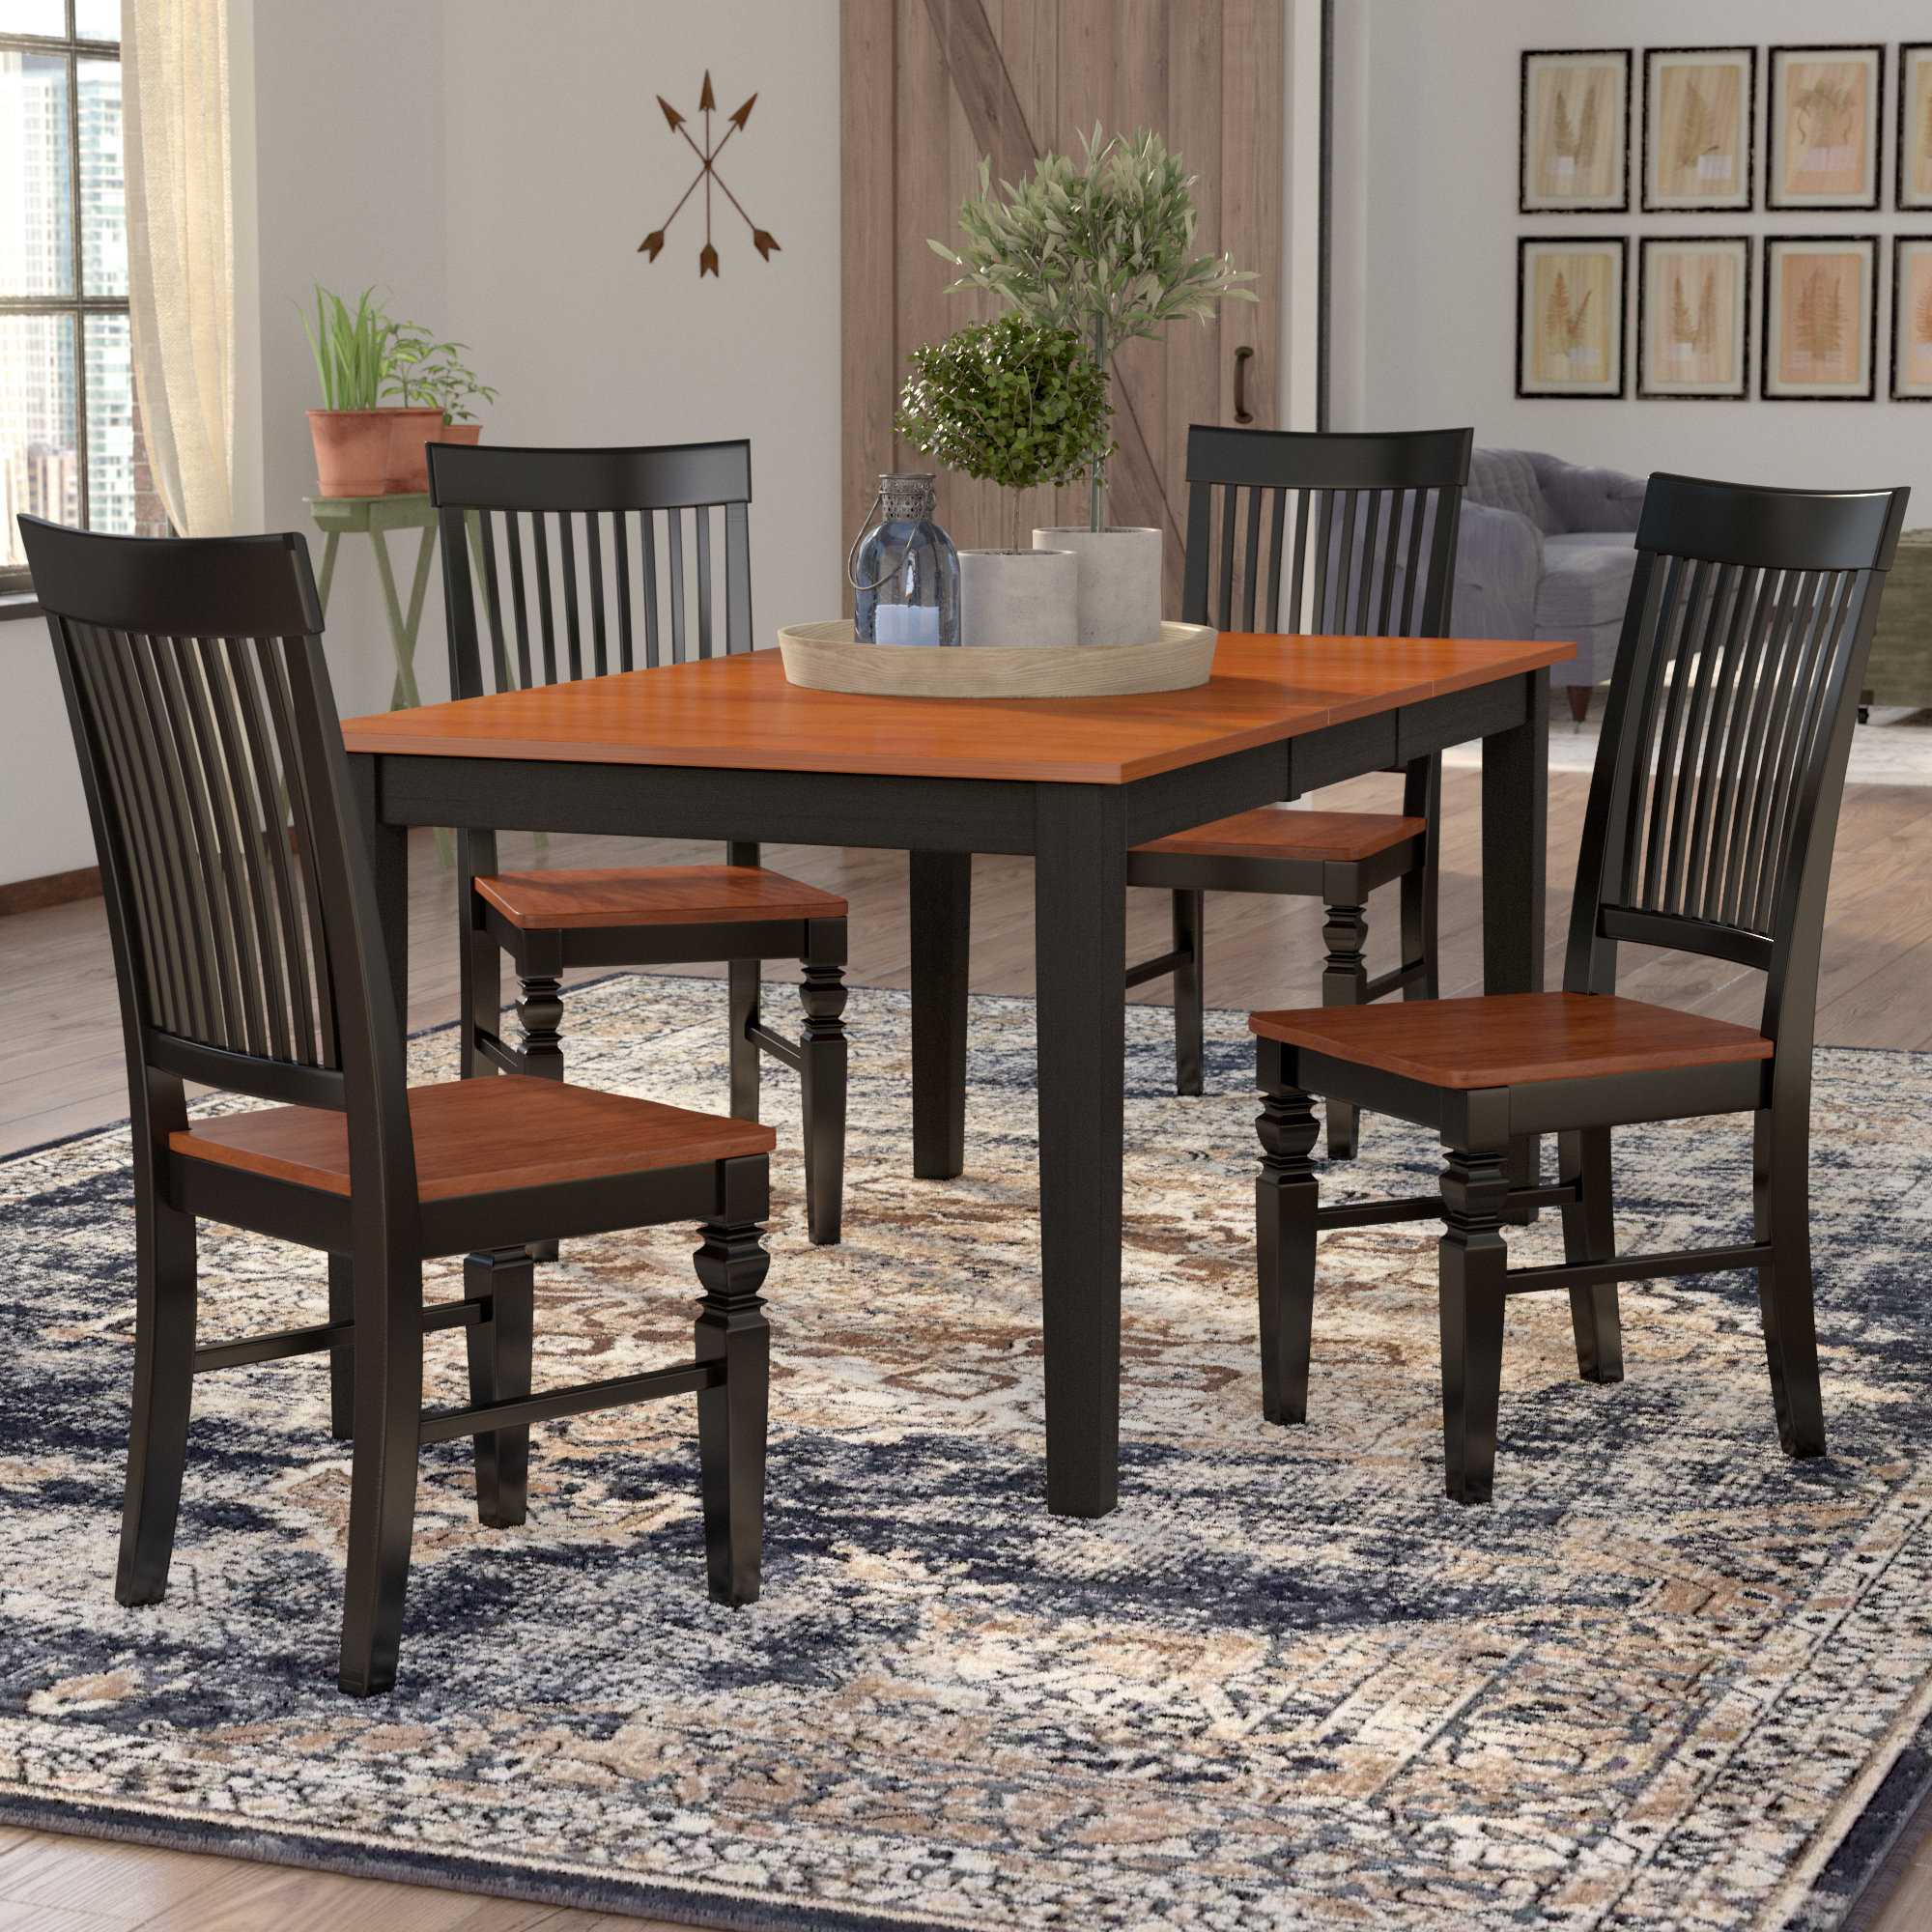 Pattonsburg 5 Piece Dining Sets Throughout Most Recently Released August Grove Pillar 5 Piece Extendable Breakfast Nook Dining Set (View 14 of 25)